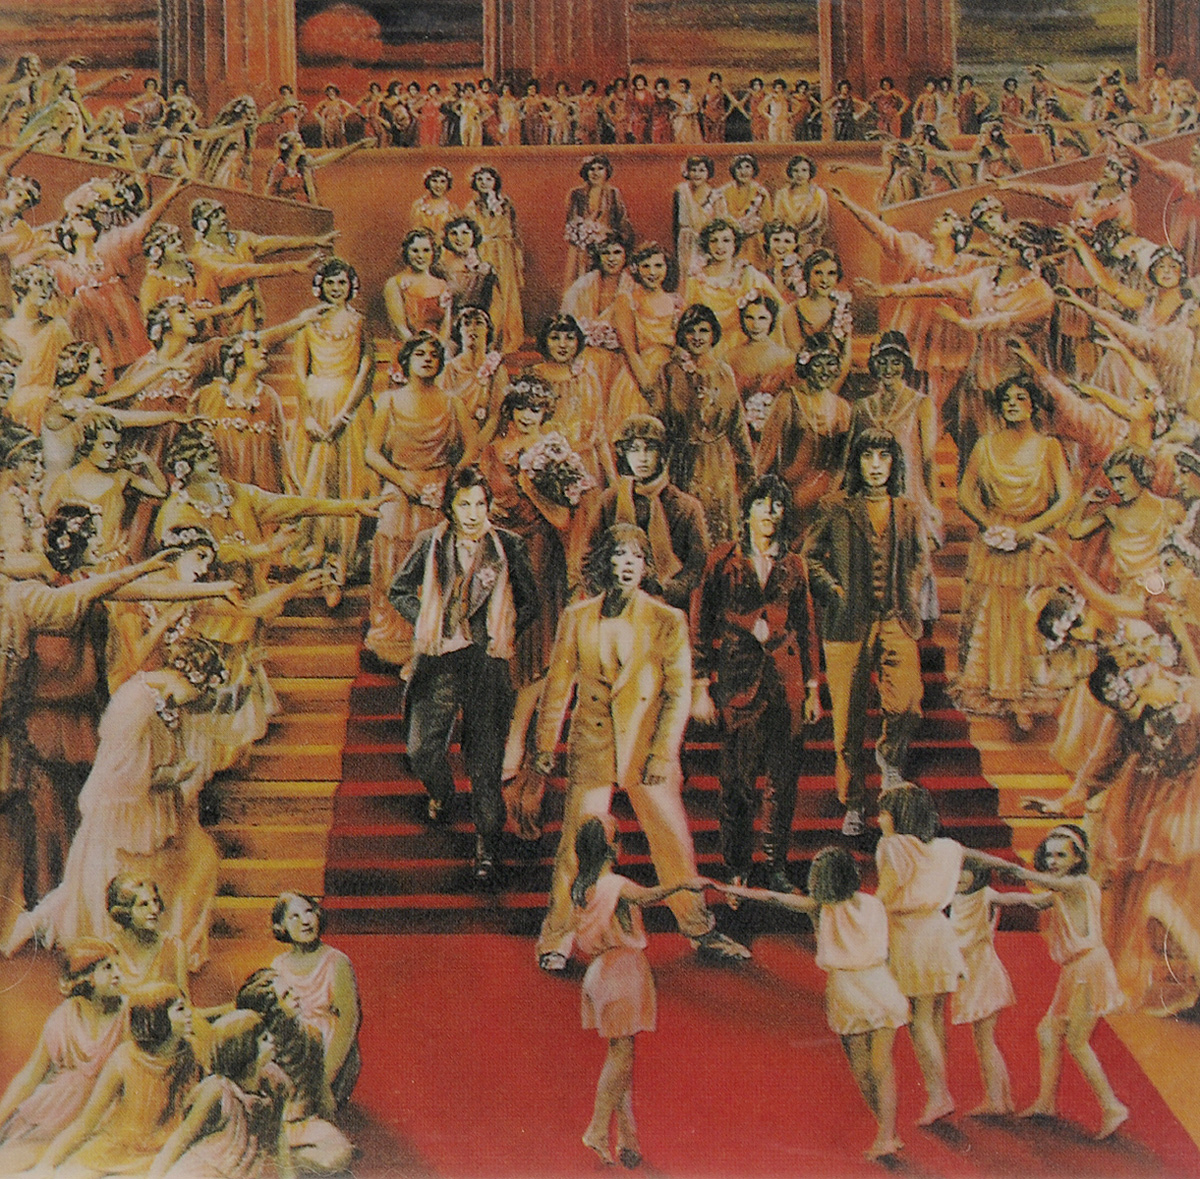 The Rolling Stones The Rolling Stones. It's Only Rock 'N' Roll the rolling stones the rolling stones the rolling stones box set 45 cd